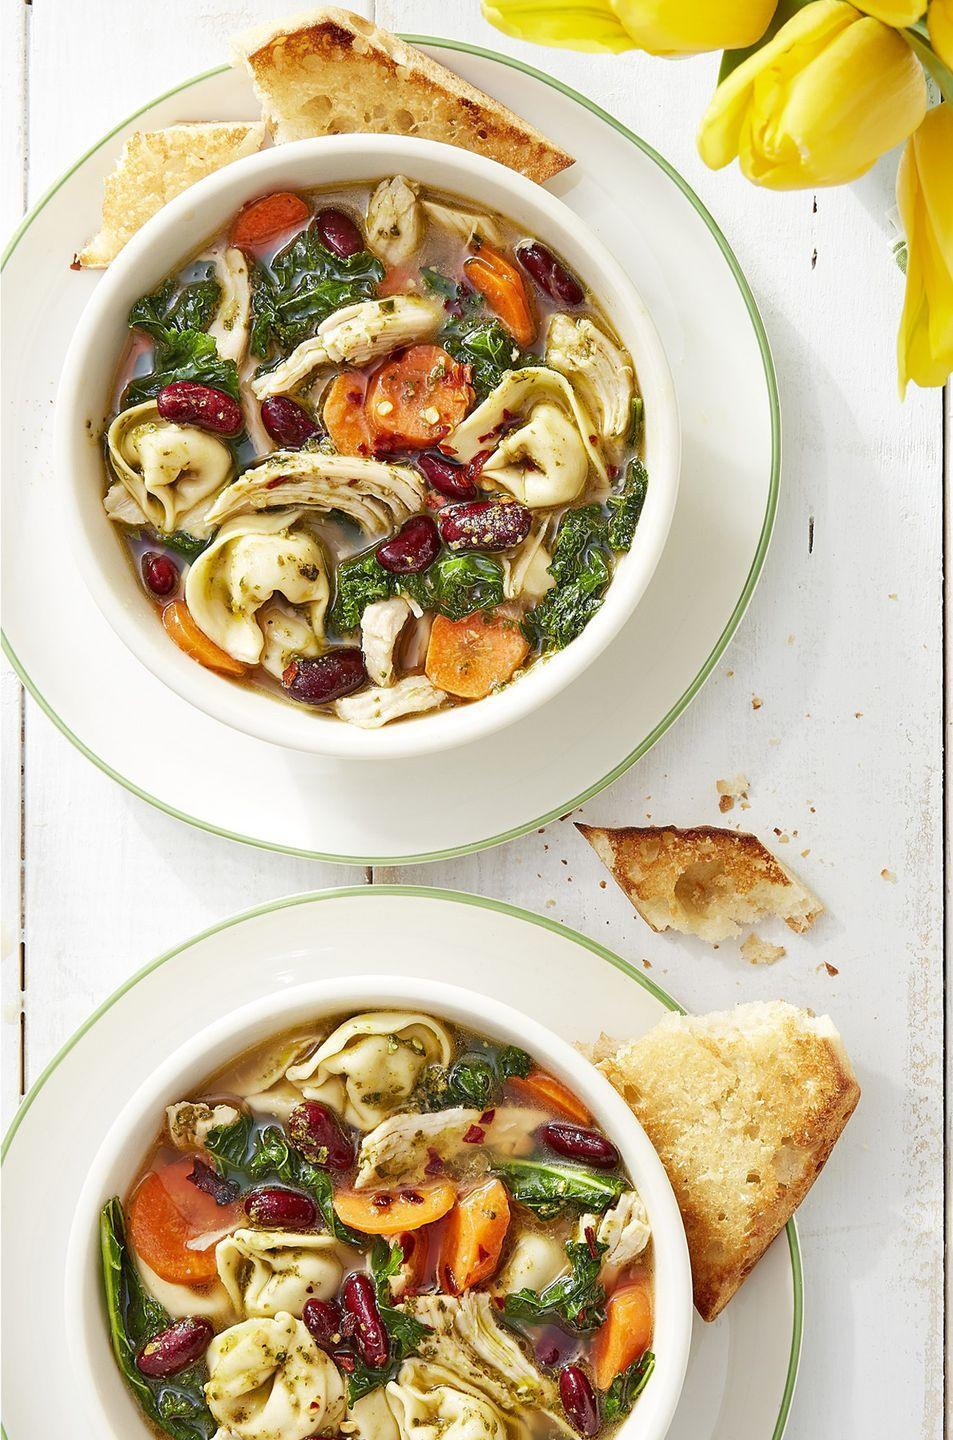 "<p>Keep this recipe around for when you want to turn pesto and tortellini into something other than a plate of pasta. </p><p><strong><a href=""https://www.countryliving.com/food-drinks/a16571977/pesto-chicken-minestrone-recipe/"" rel=""nofollow noopener"" target=""_blank"" data-ylk=""slk:Get the recipe"" class=""link rapid-noclick-resp"">Get the recipe</a>.</strong></p><p><a class=""link rapid-noclick-resp"" href=""https://www.amazon.com/Cook-Home-Stainless-Stockpot-Saucepot/dp/B012OIVV1C/?tag=syn-yahoo-20&ascsubtag=%5Bartid%7C10050.g.3569%5Bsrc%7Cyahoo-us"" rel=""nofollow noopener"" target=""_blank"" data-ylk=""slk:SHOP SOUP POTS"">SHOP SOUP POTS</a></p>"